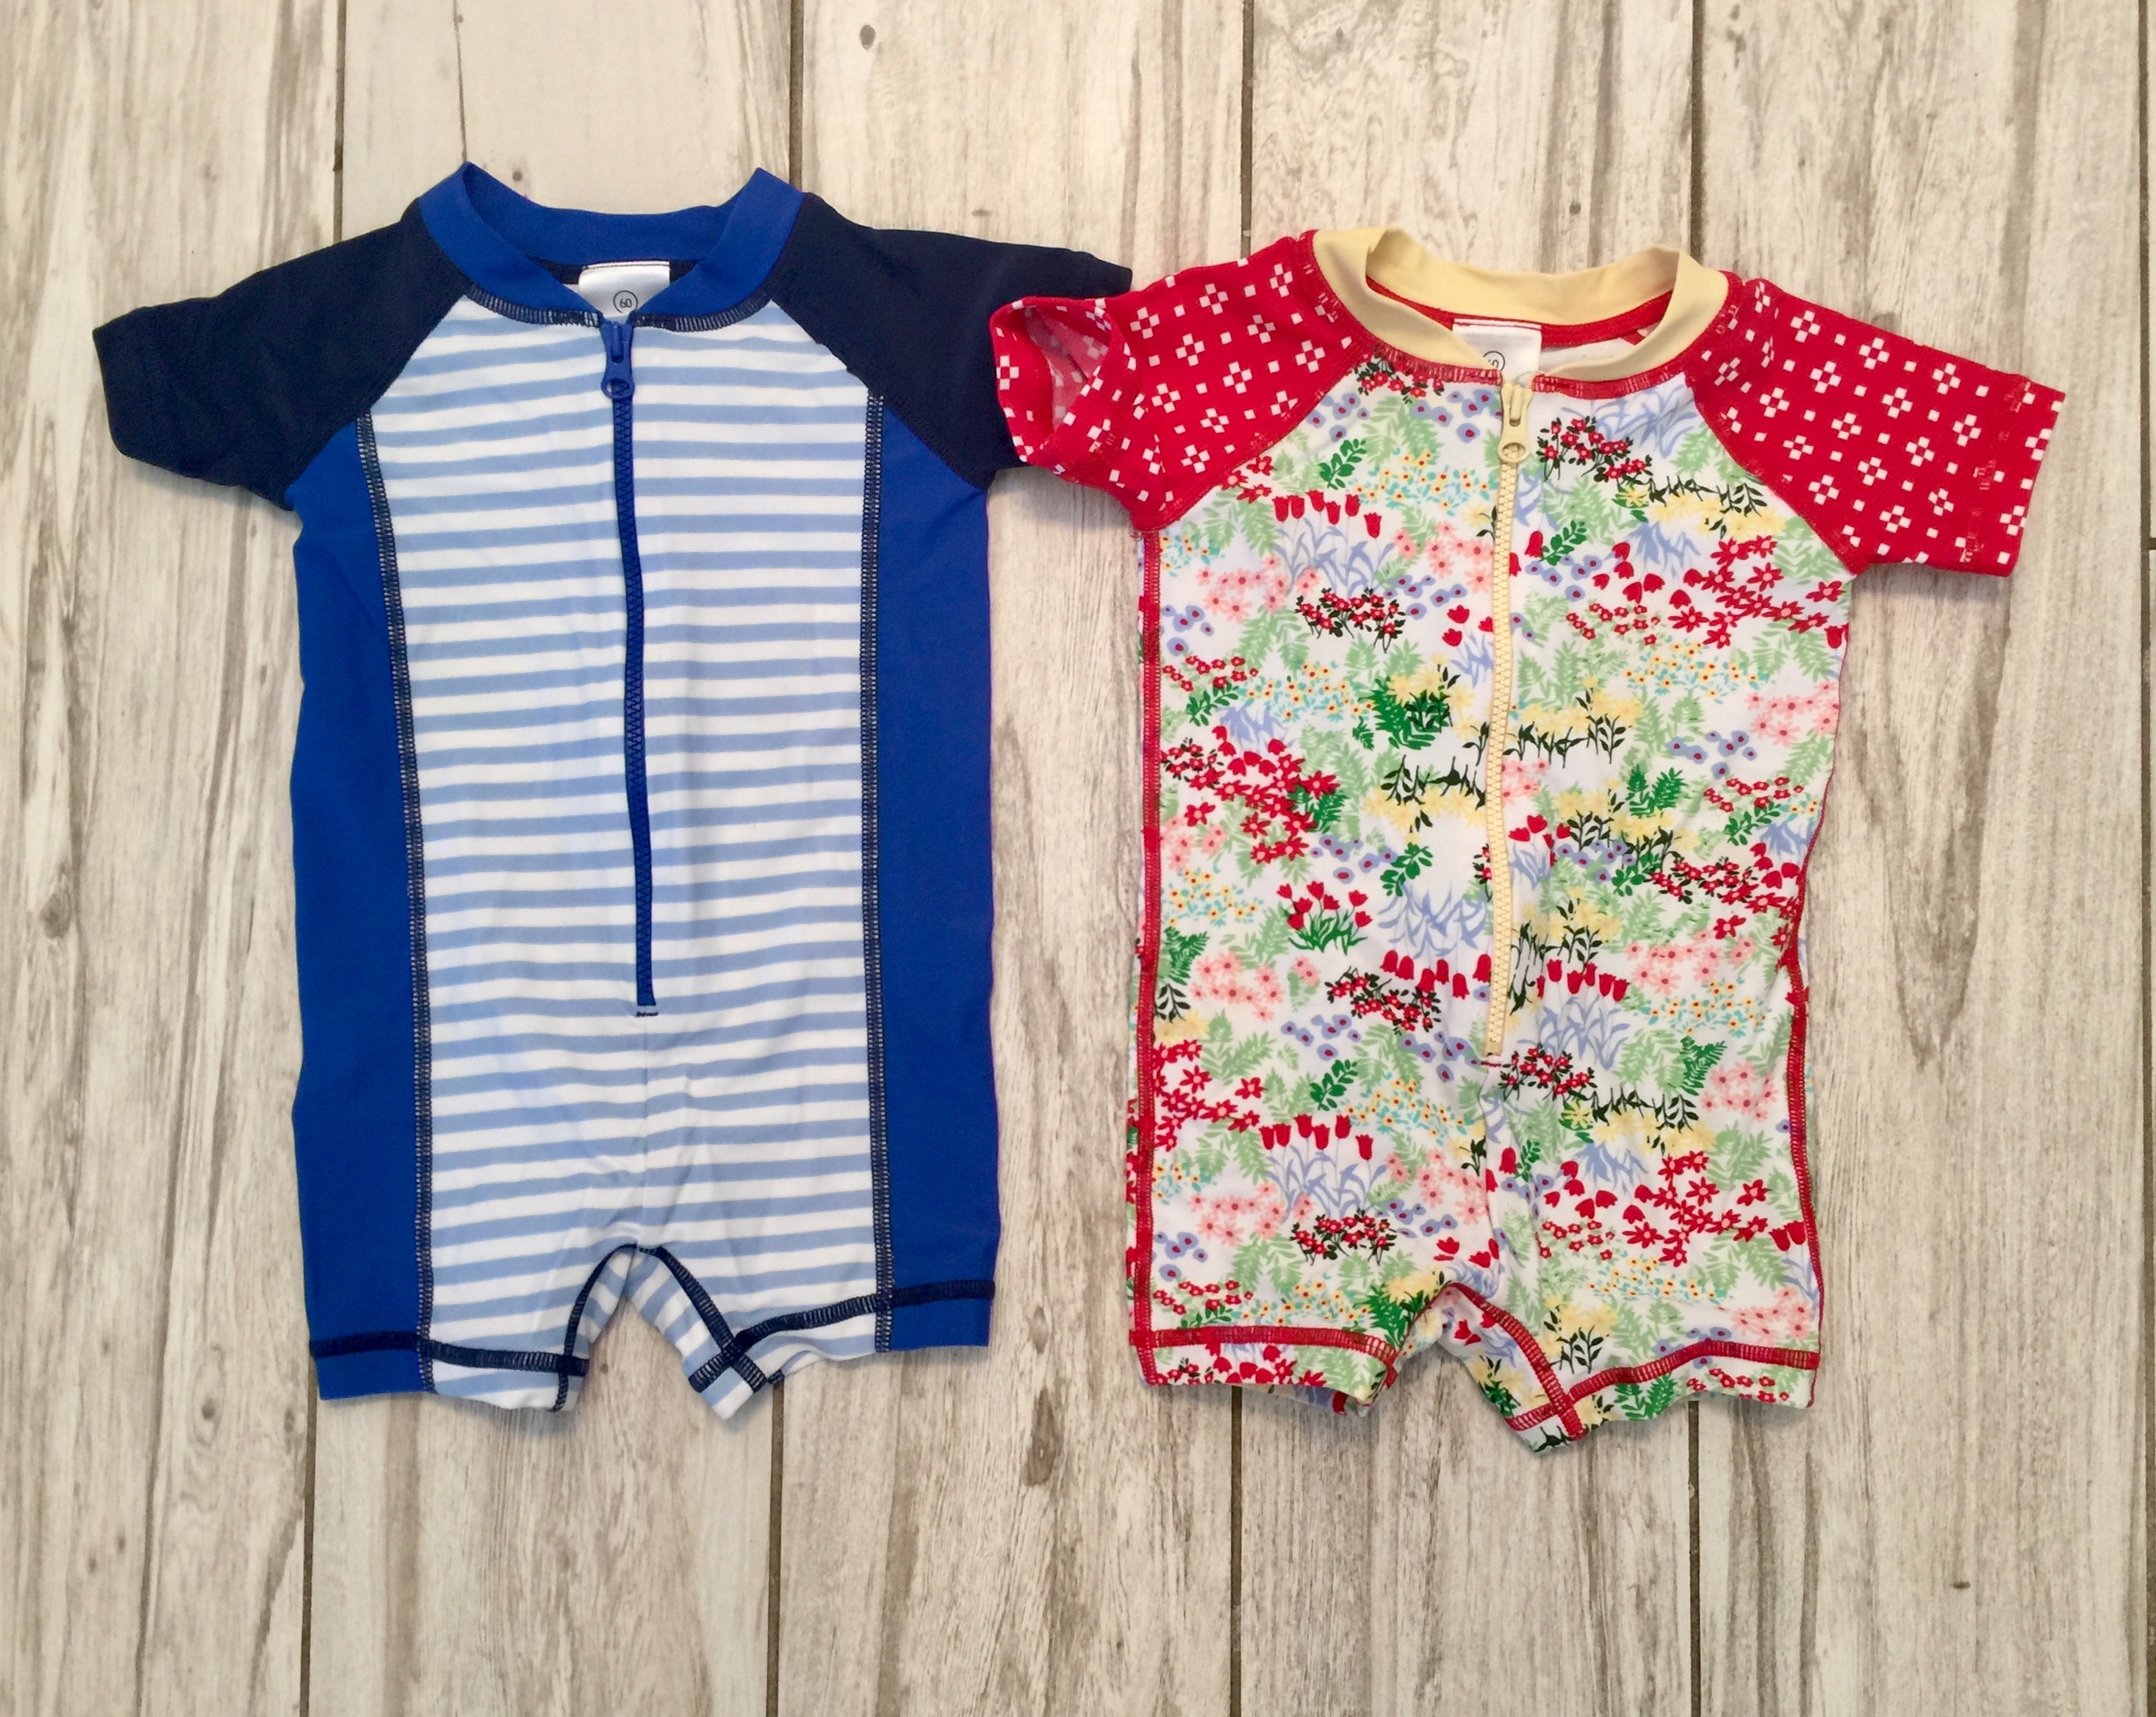 Hanna Andersson Baby//Toddler Sunblock Swimmy Rash Guard Suit